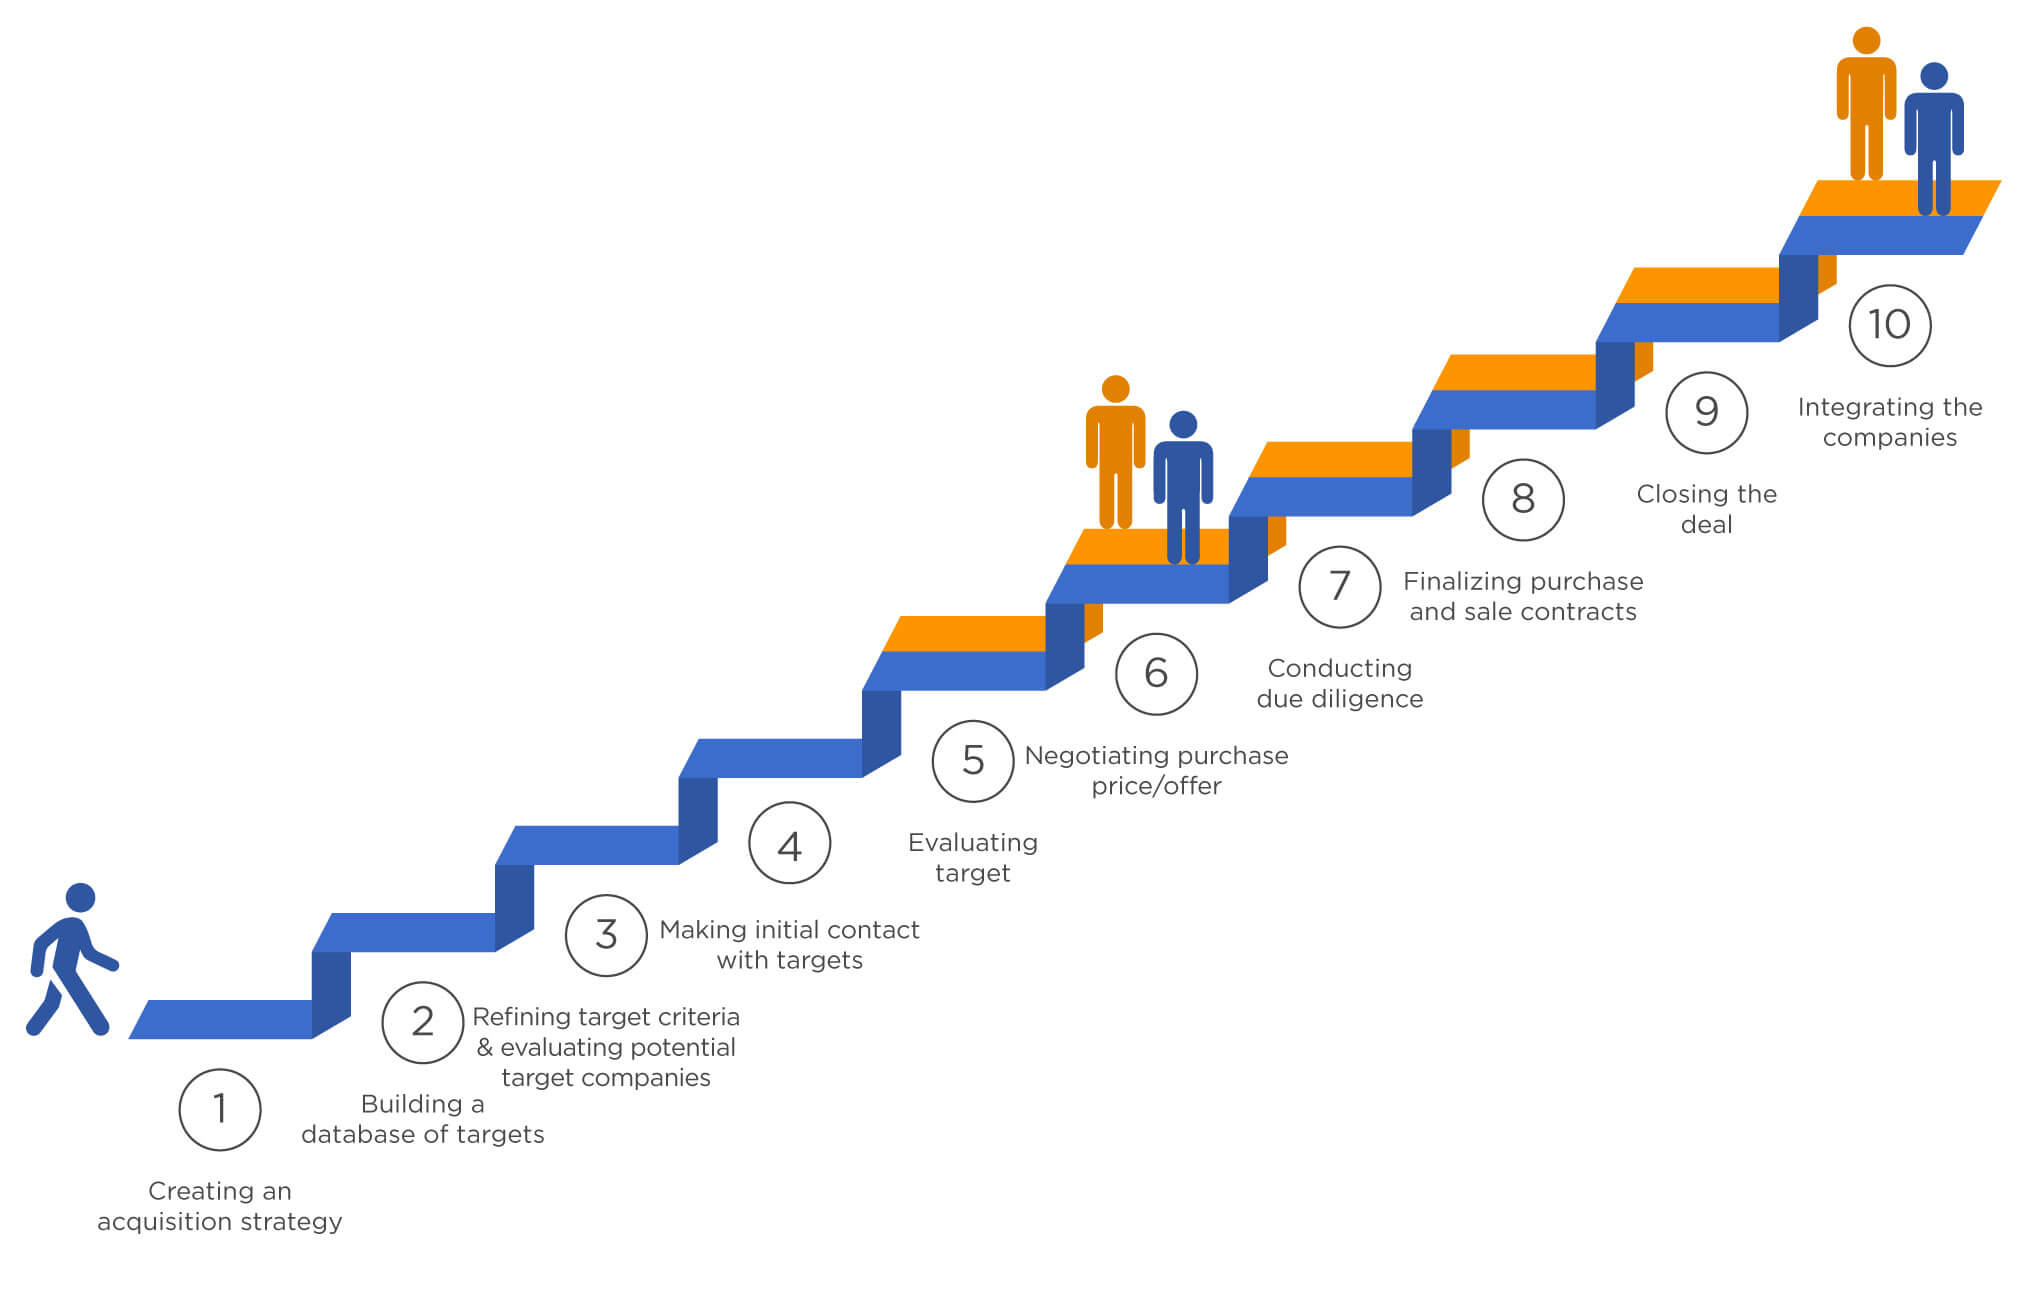 steps in mergers and acquisitions process